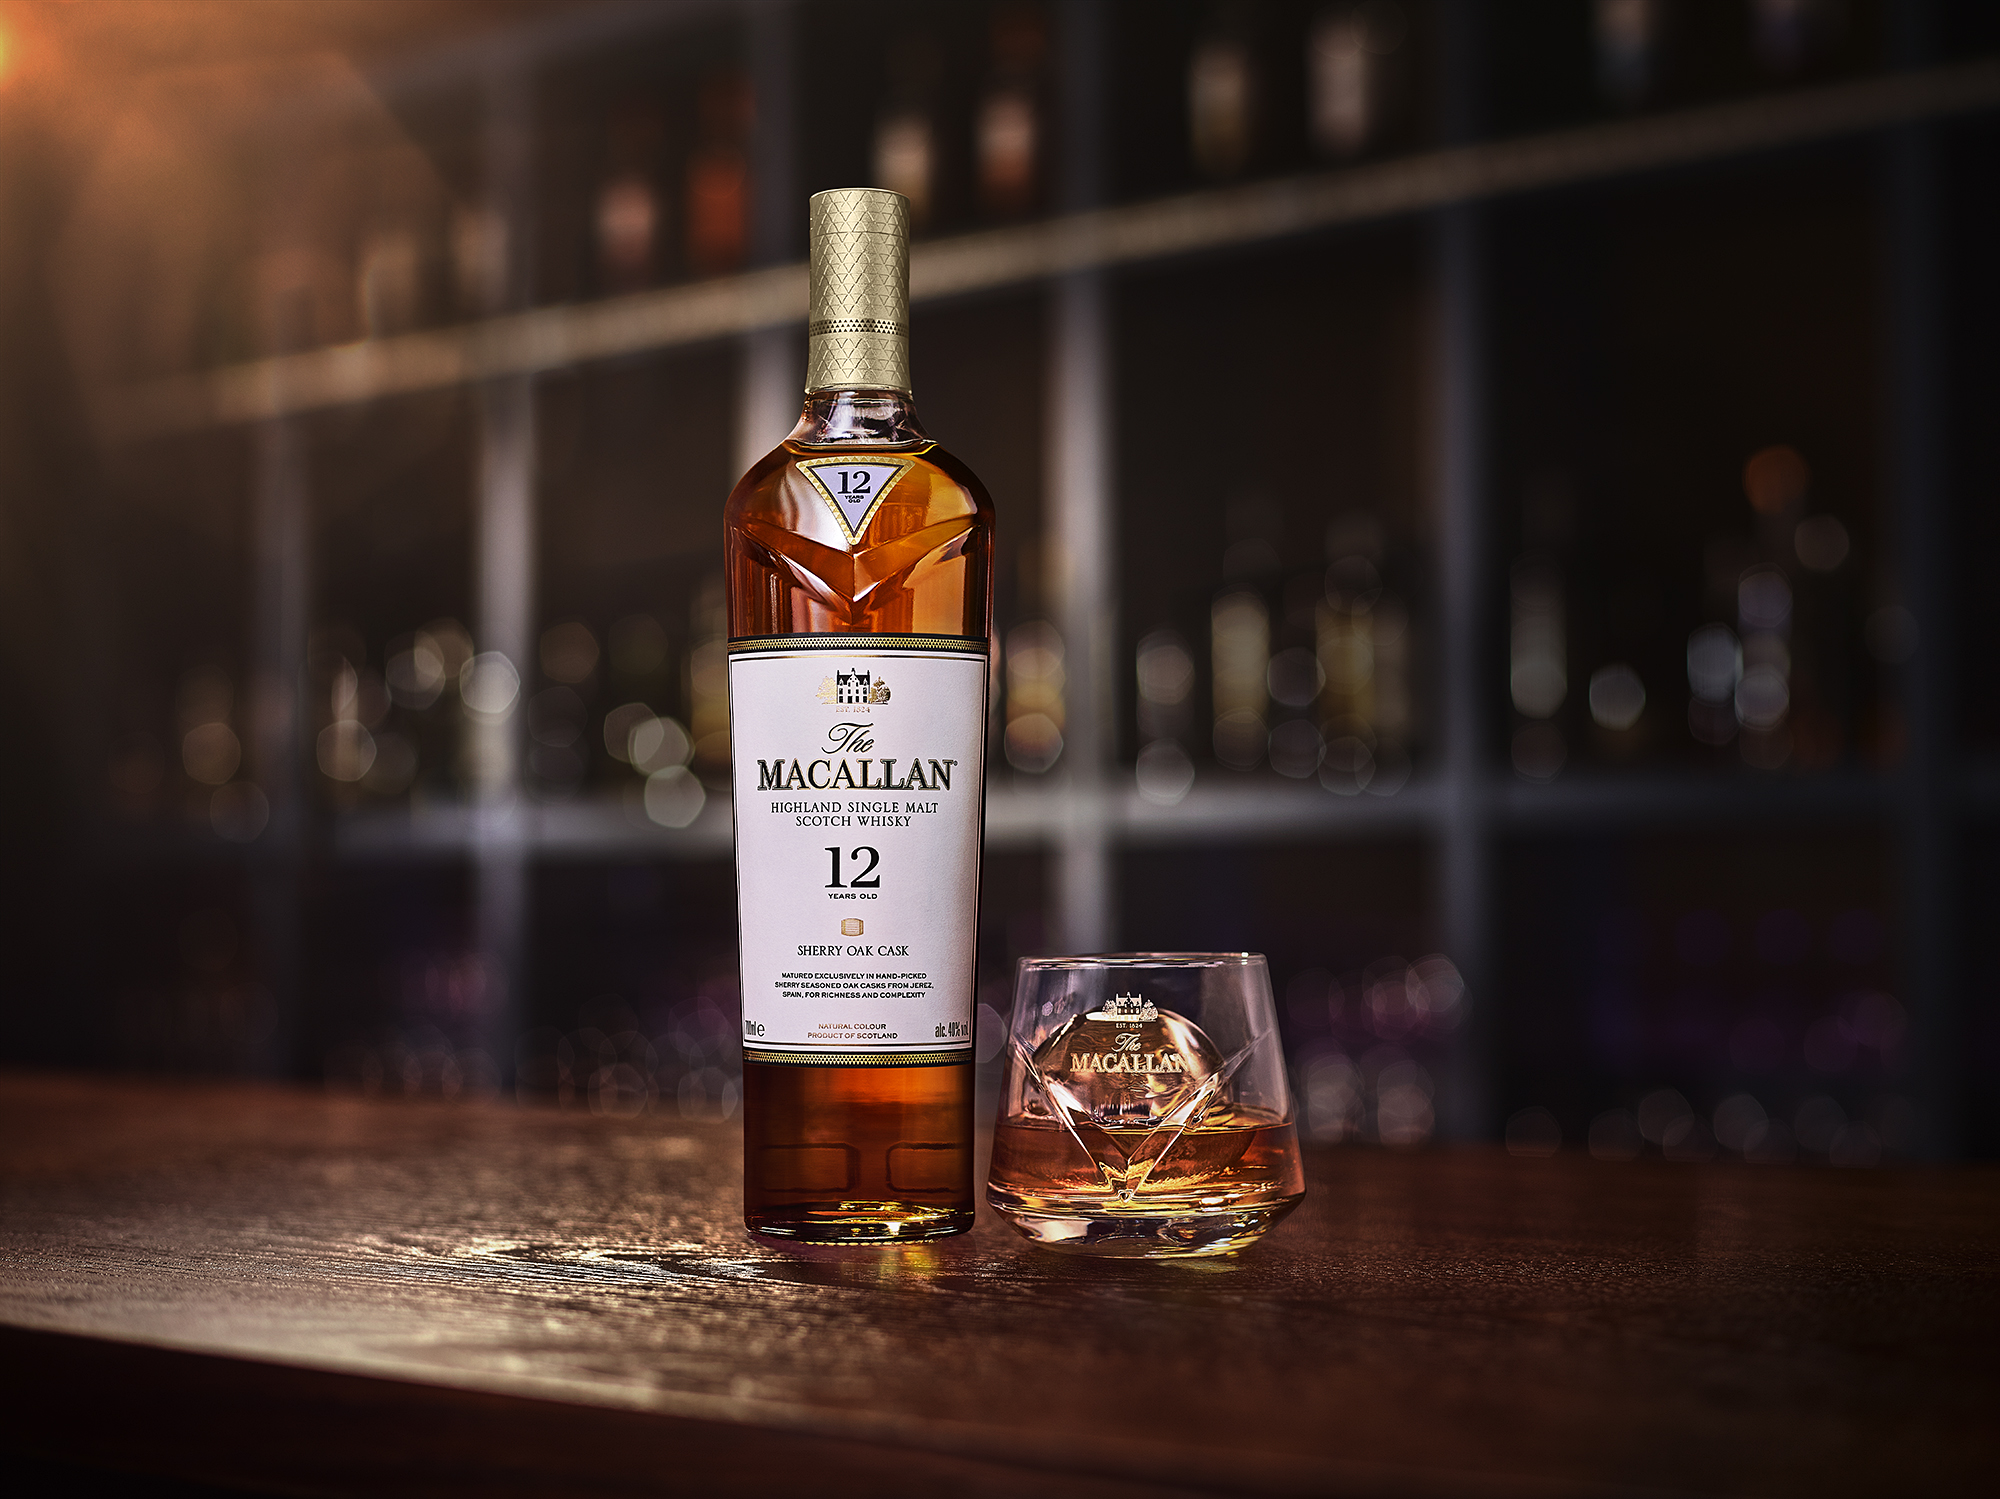 The Macallan Unveils New Design for Its Single Malt Whiskies